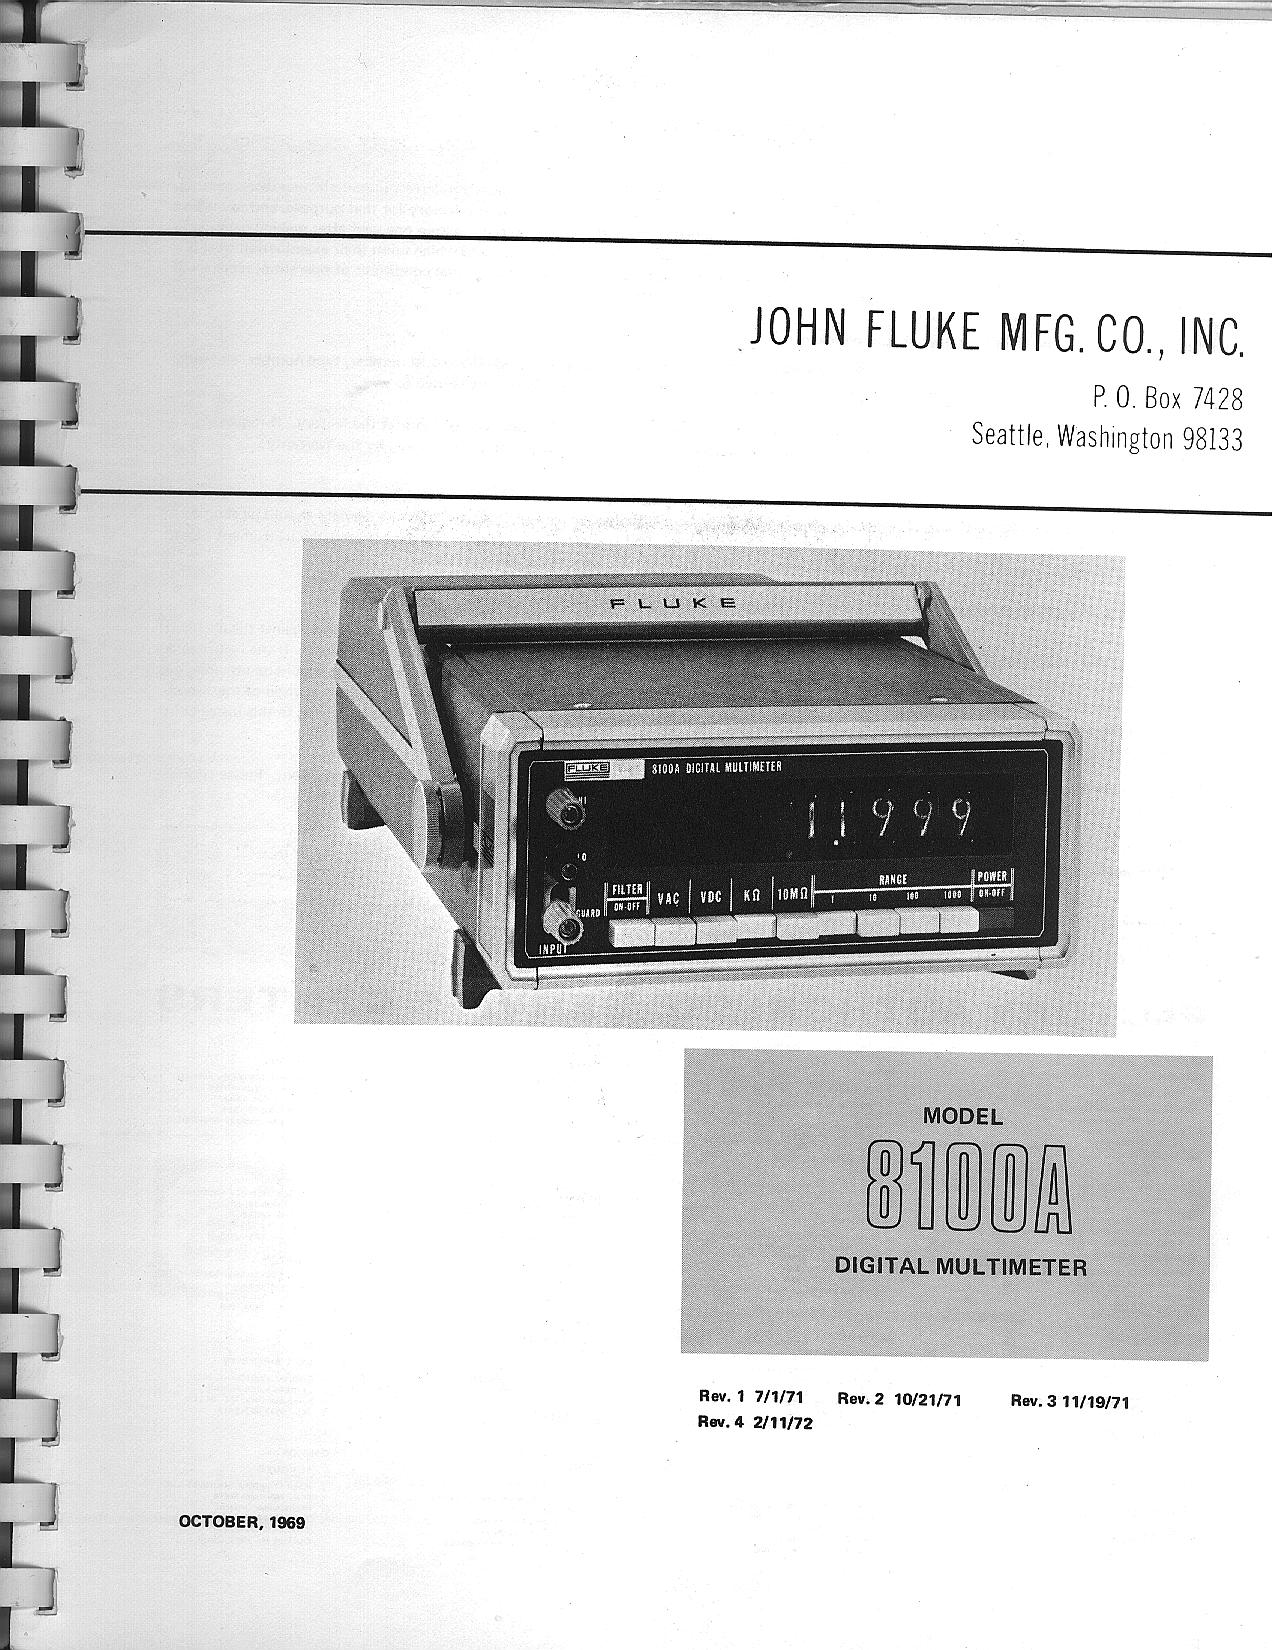 Fluke 8100a And 8100b Schematics Manual Voltmeter Schematic Title Page